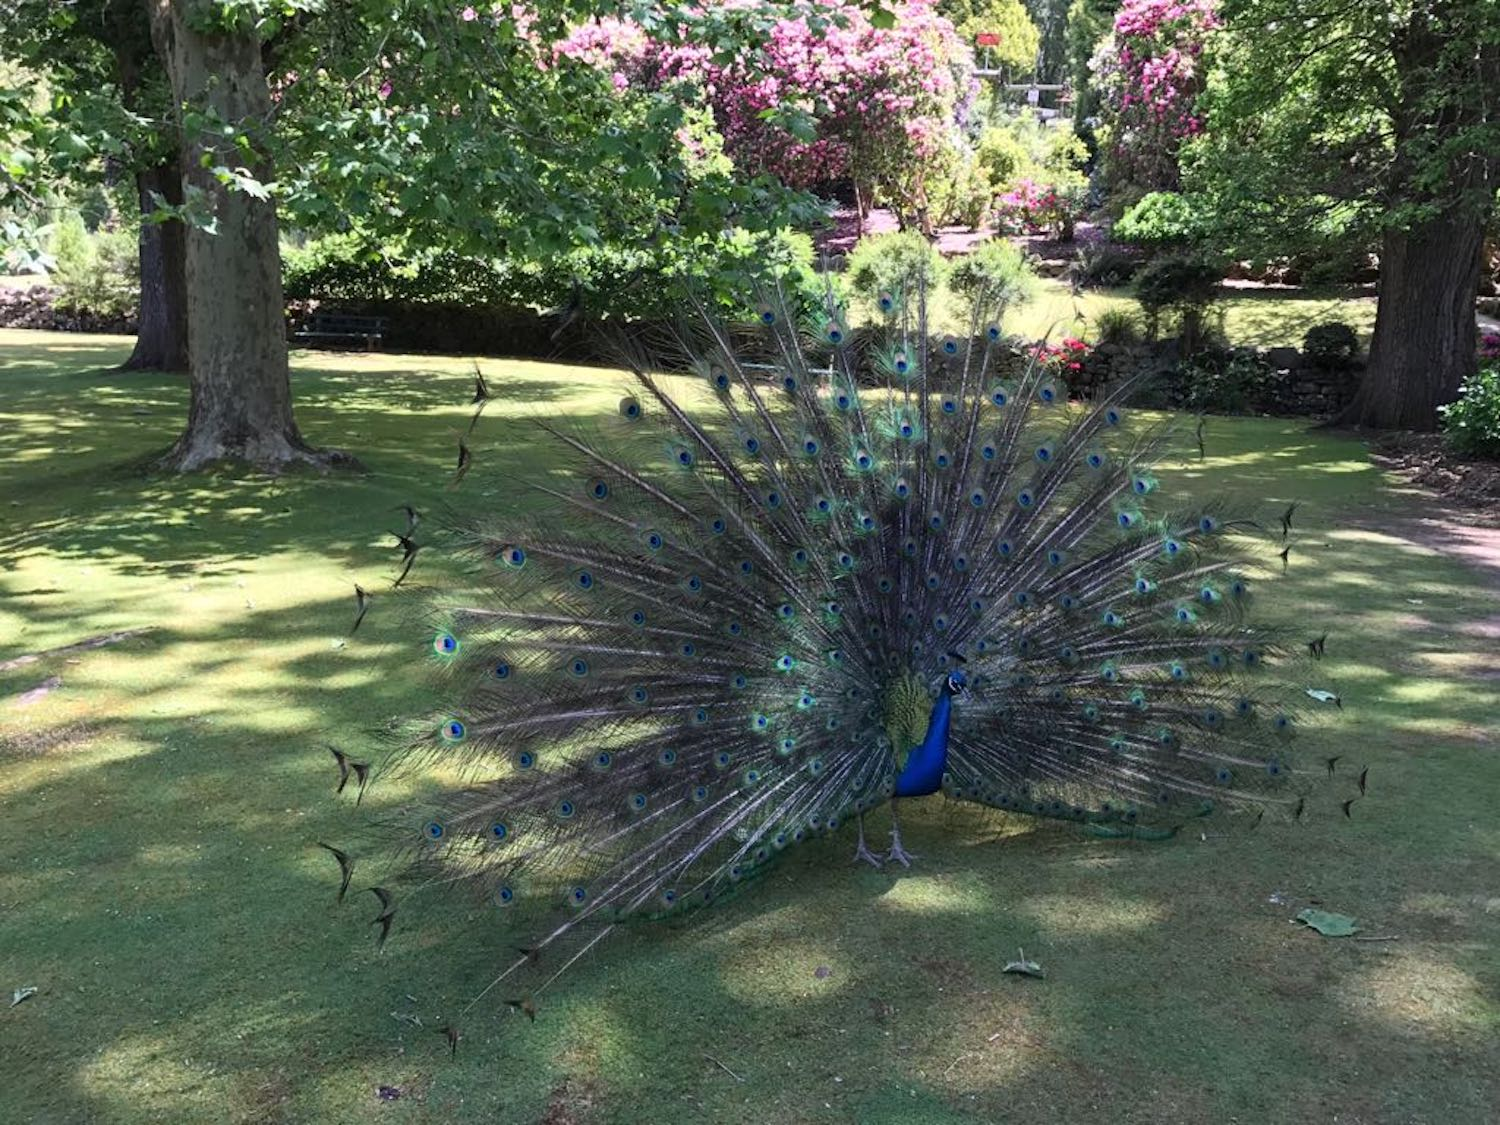 Yes you are magnificent, Mr. peacock!